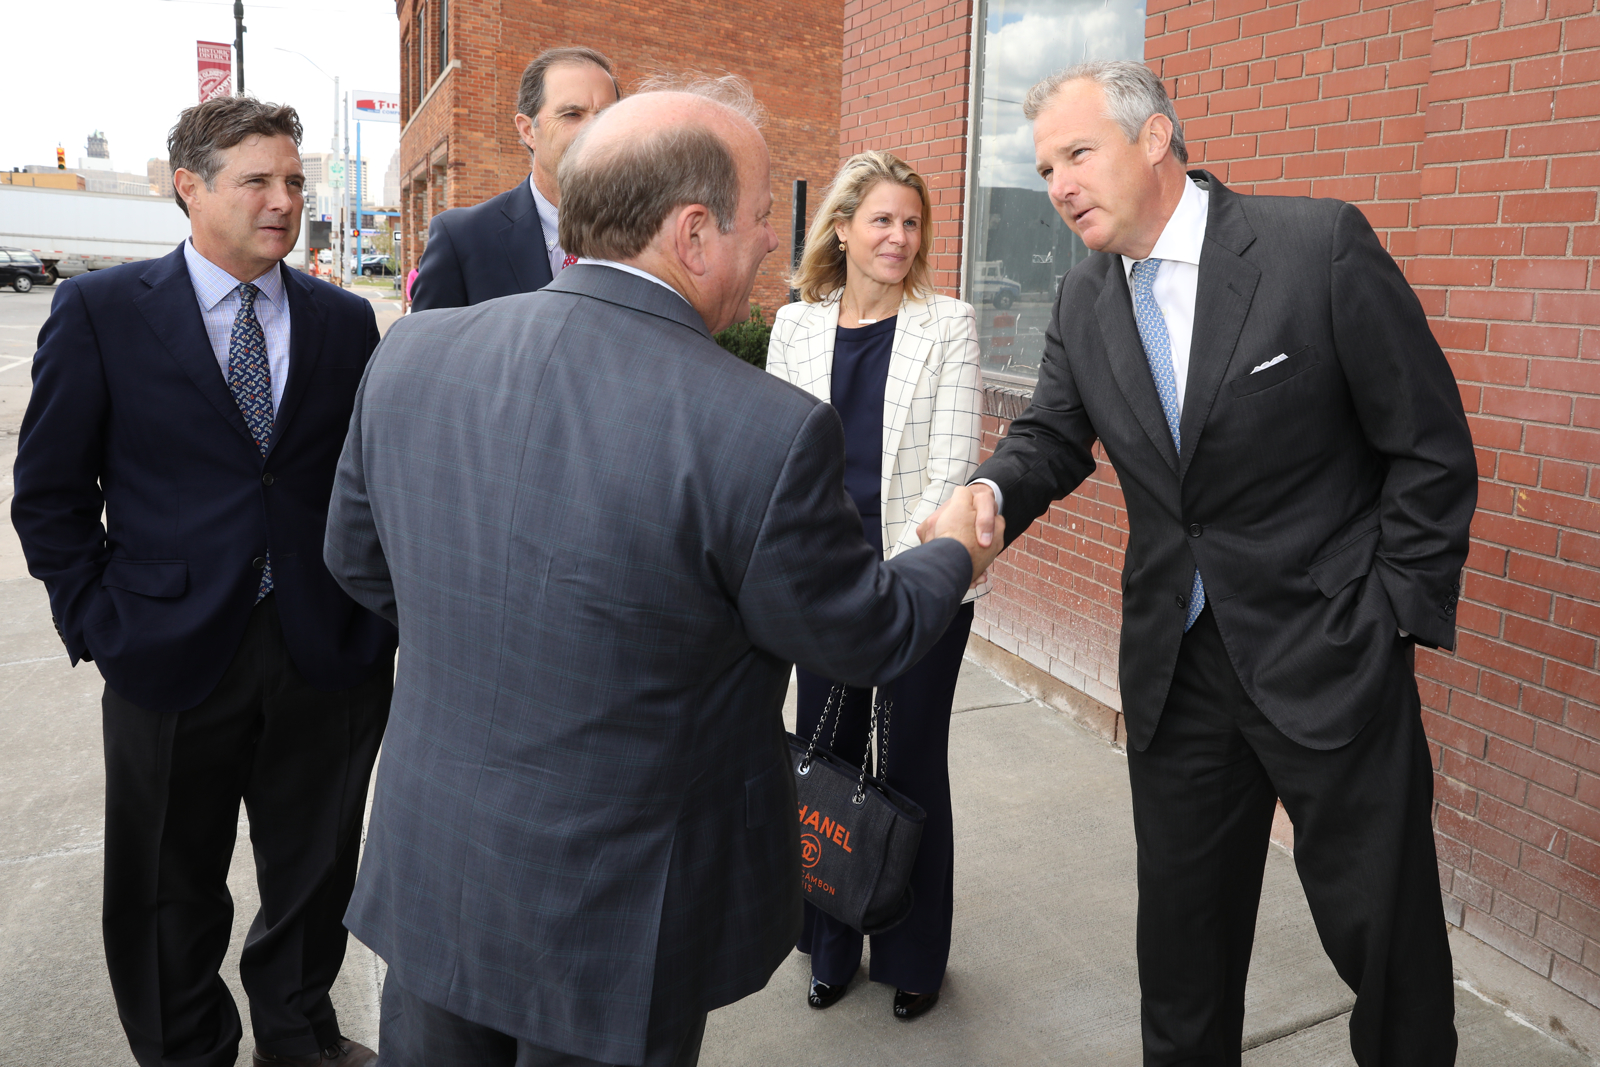 Tom shaking hands with Mayor Mike Duggan at the ribbon cutting of The Factory at Corktown in September, 2017. Also pictured with Tom (left to right) is brother Robbie, partner Britt Greene, and wife Lindsey.